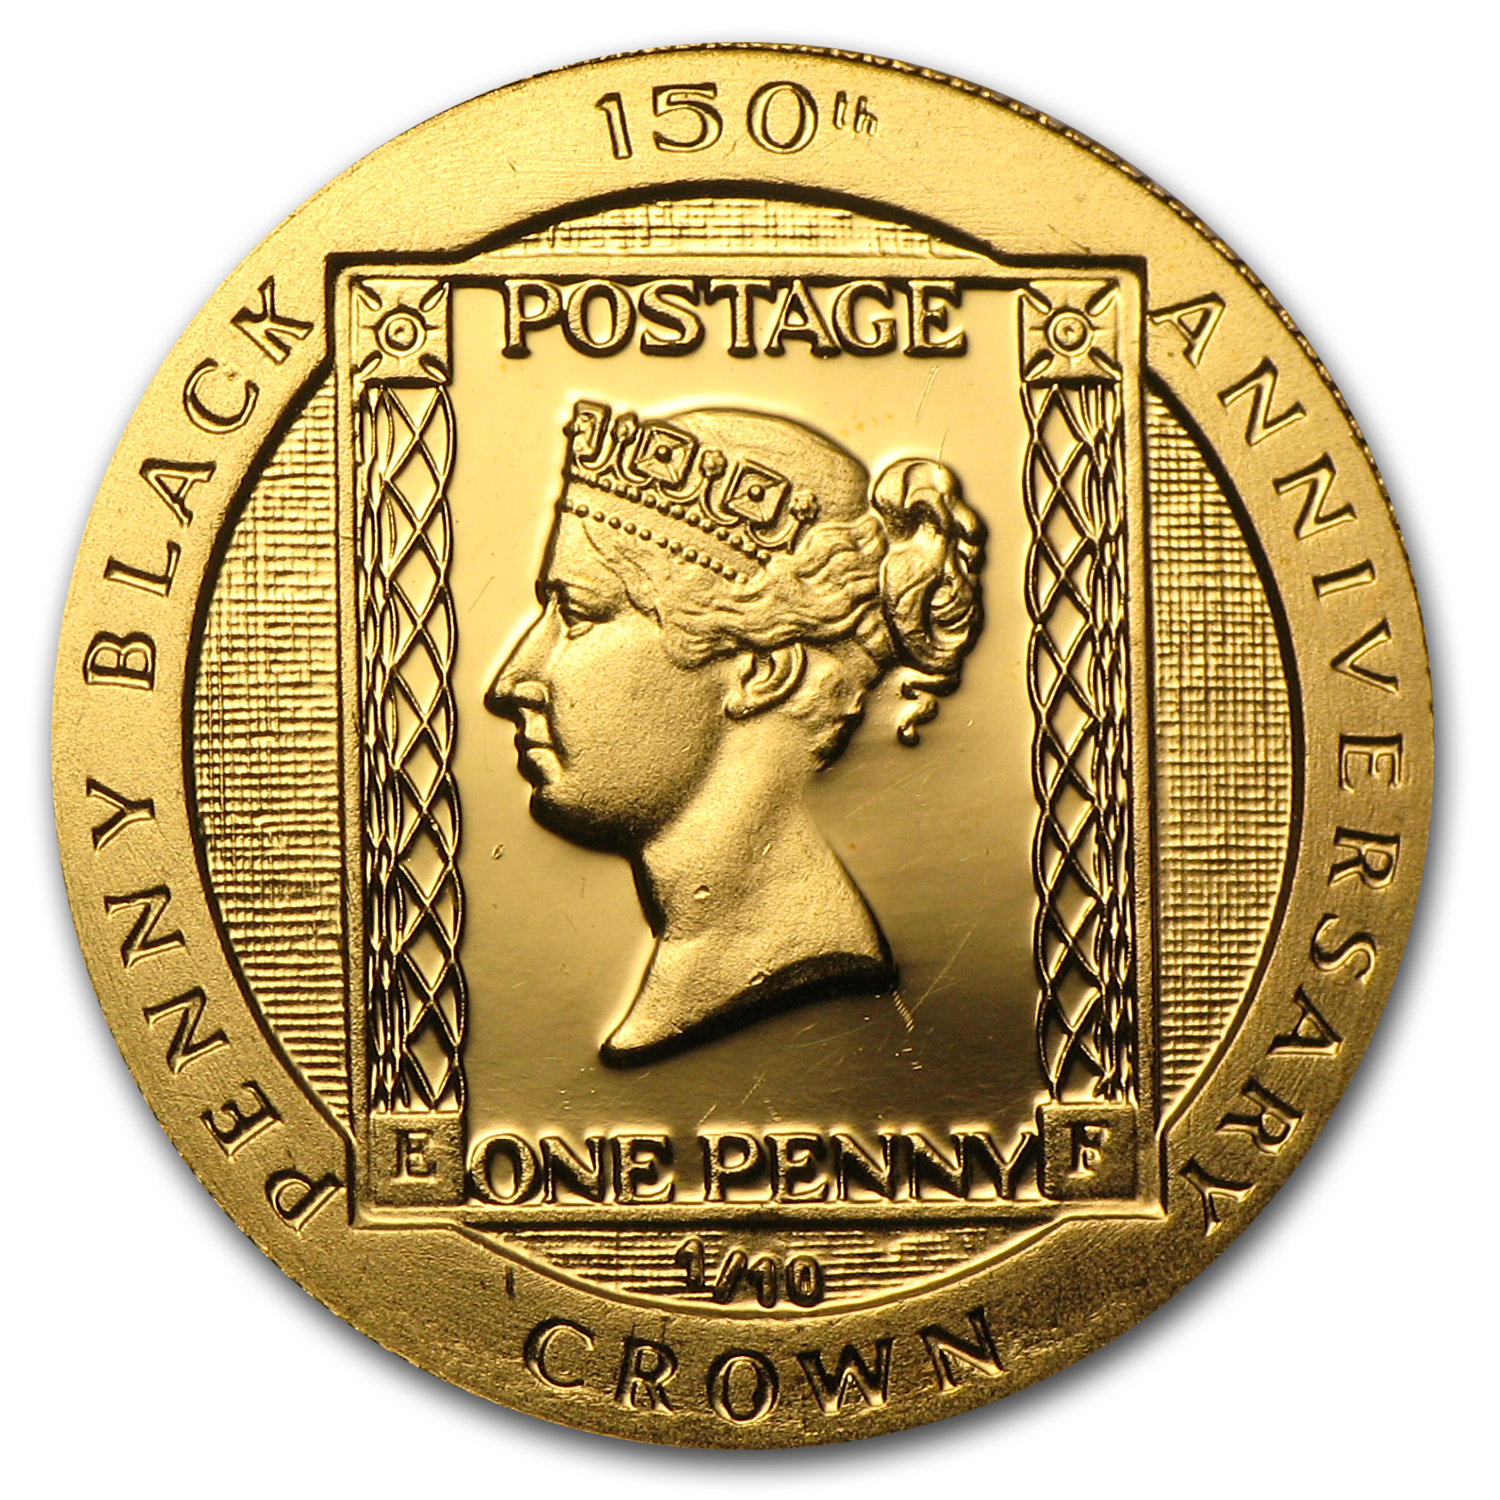 1990 Isle of Man 1/10 Crown Proof Gold Penny Black